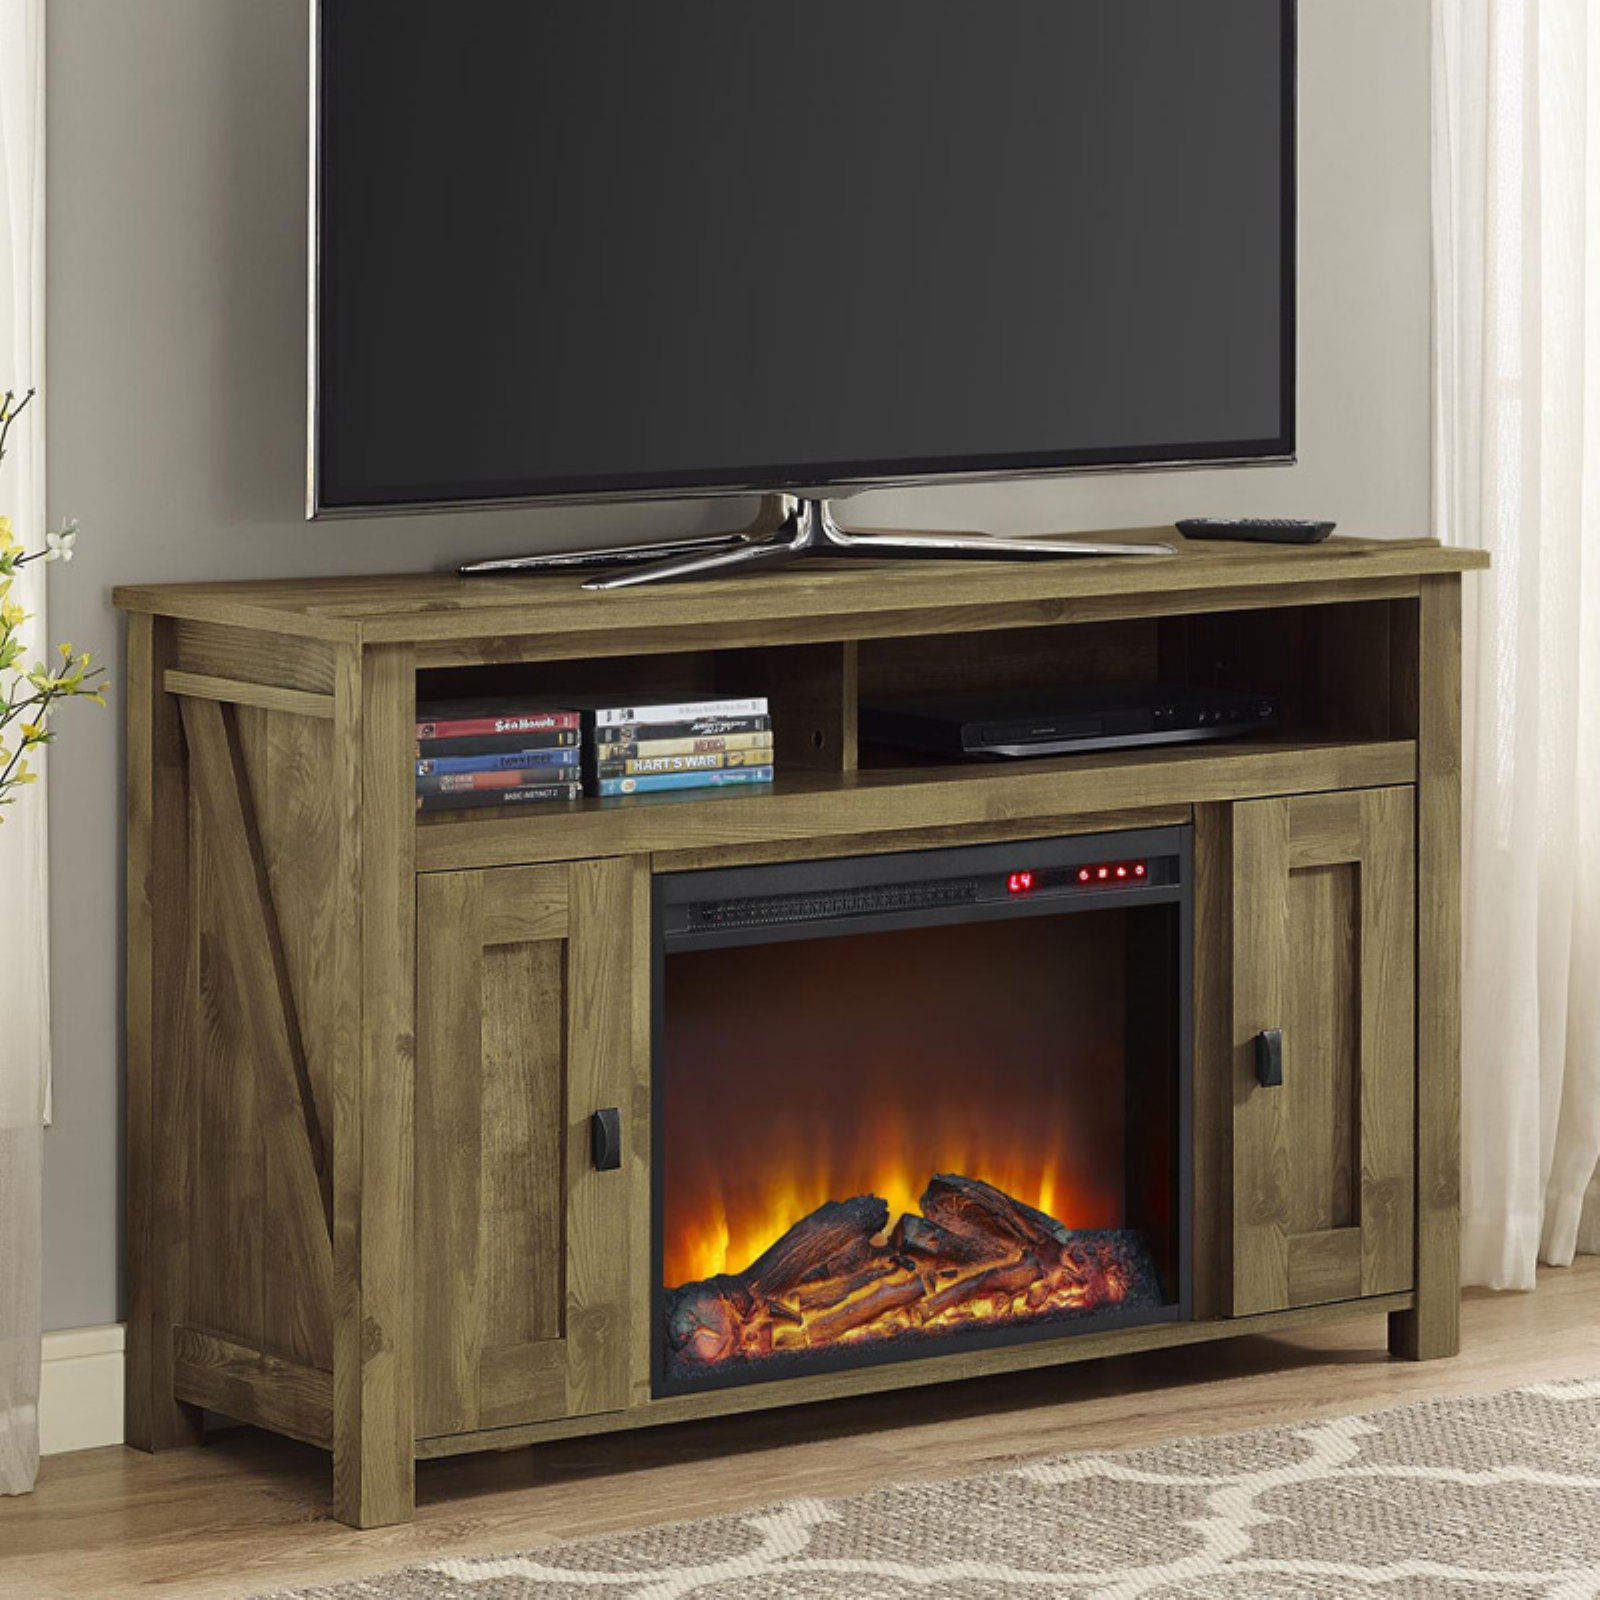 Farmington Electric Fireplace TV Console for TVs, Multiple Colors and Sizes